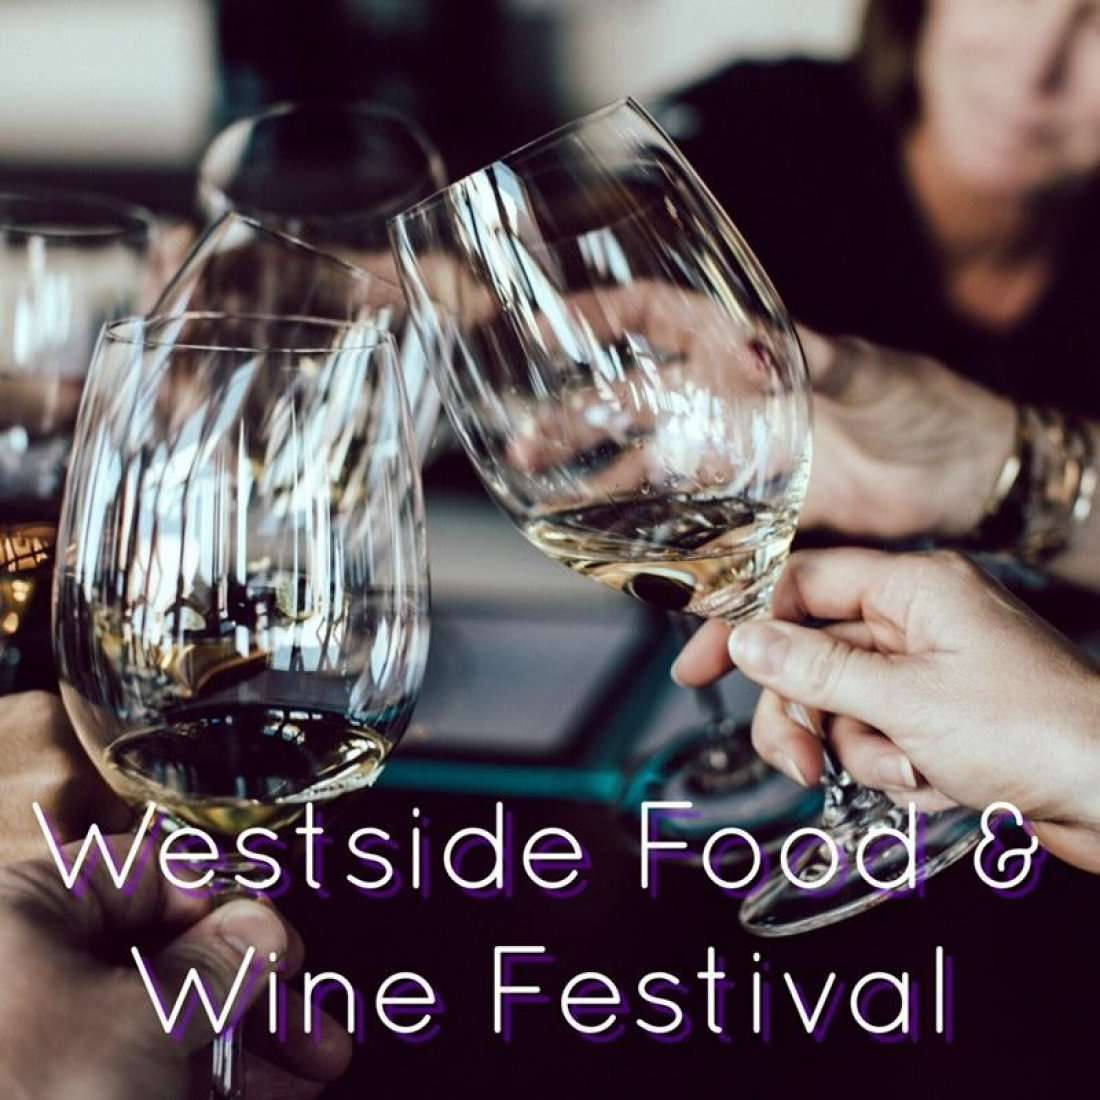 Westside Food and Wine Fall Festival benefiting Meals on Wheels